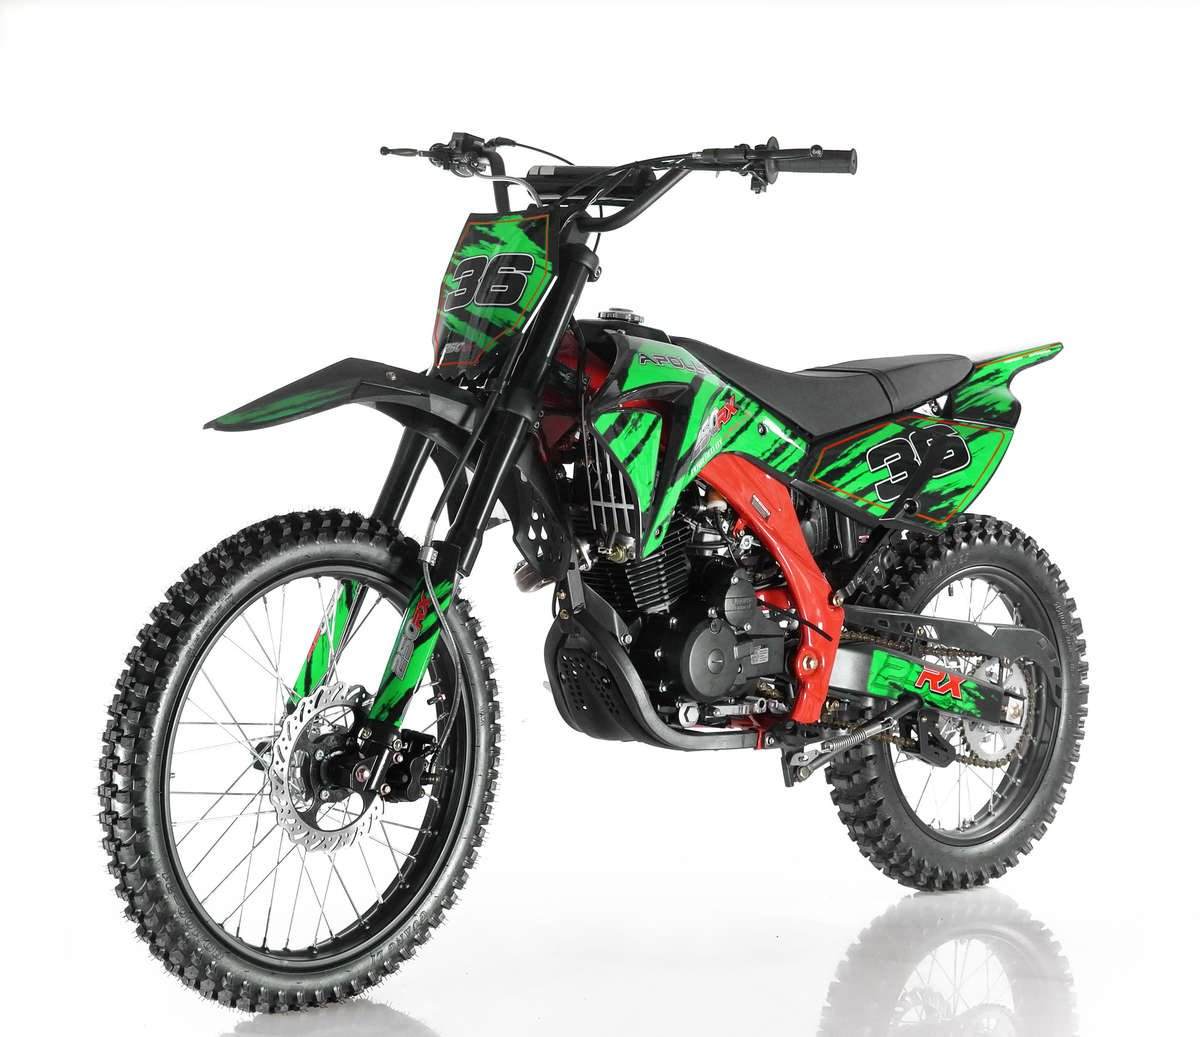 Apollo 36 Dirt Bike 250cc Green